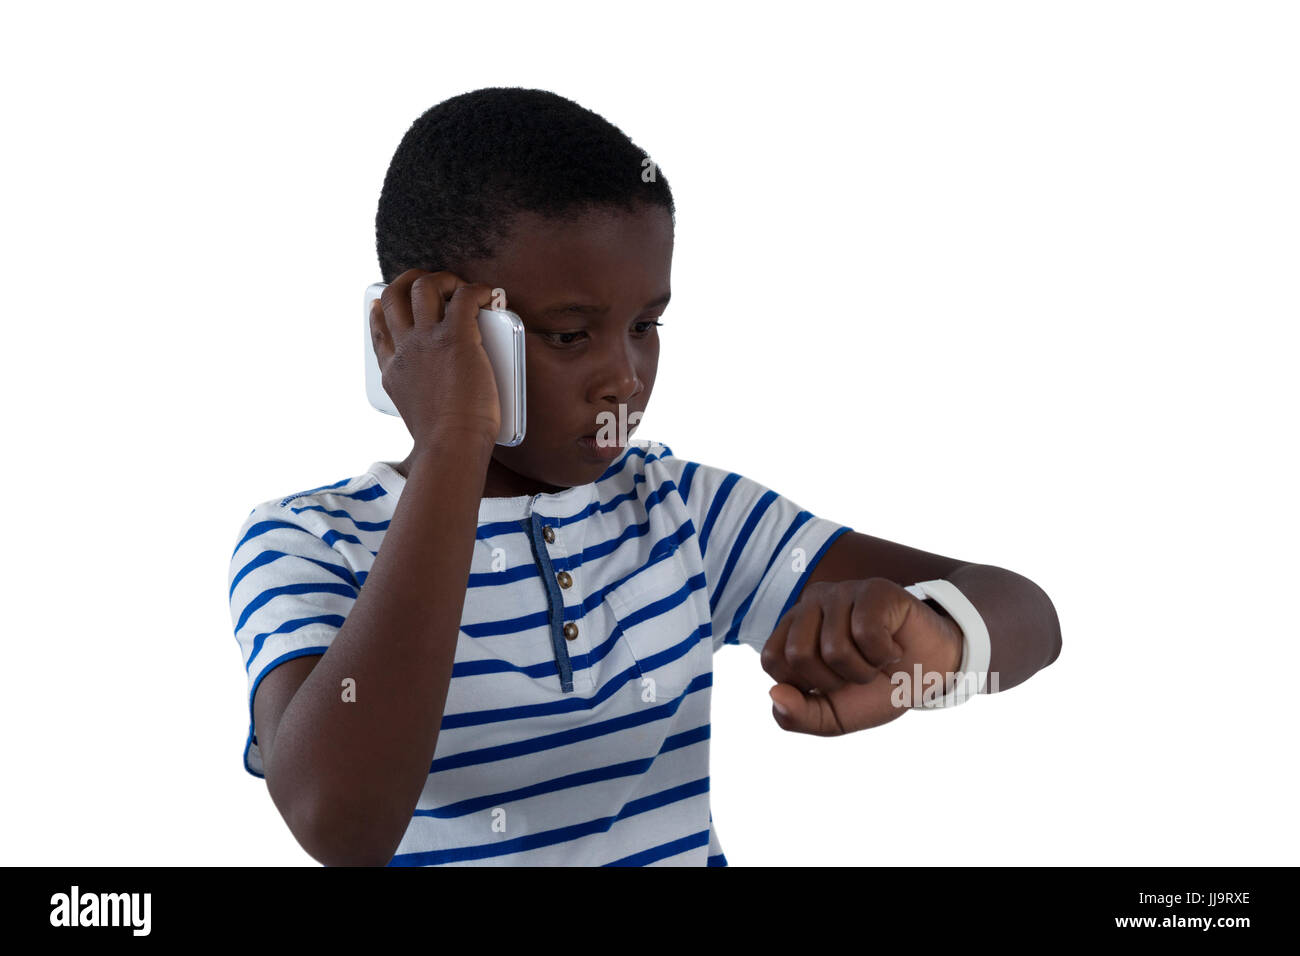 Boy looking at his smart watch while talking on mobile phone against white background - Stock Image